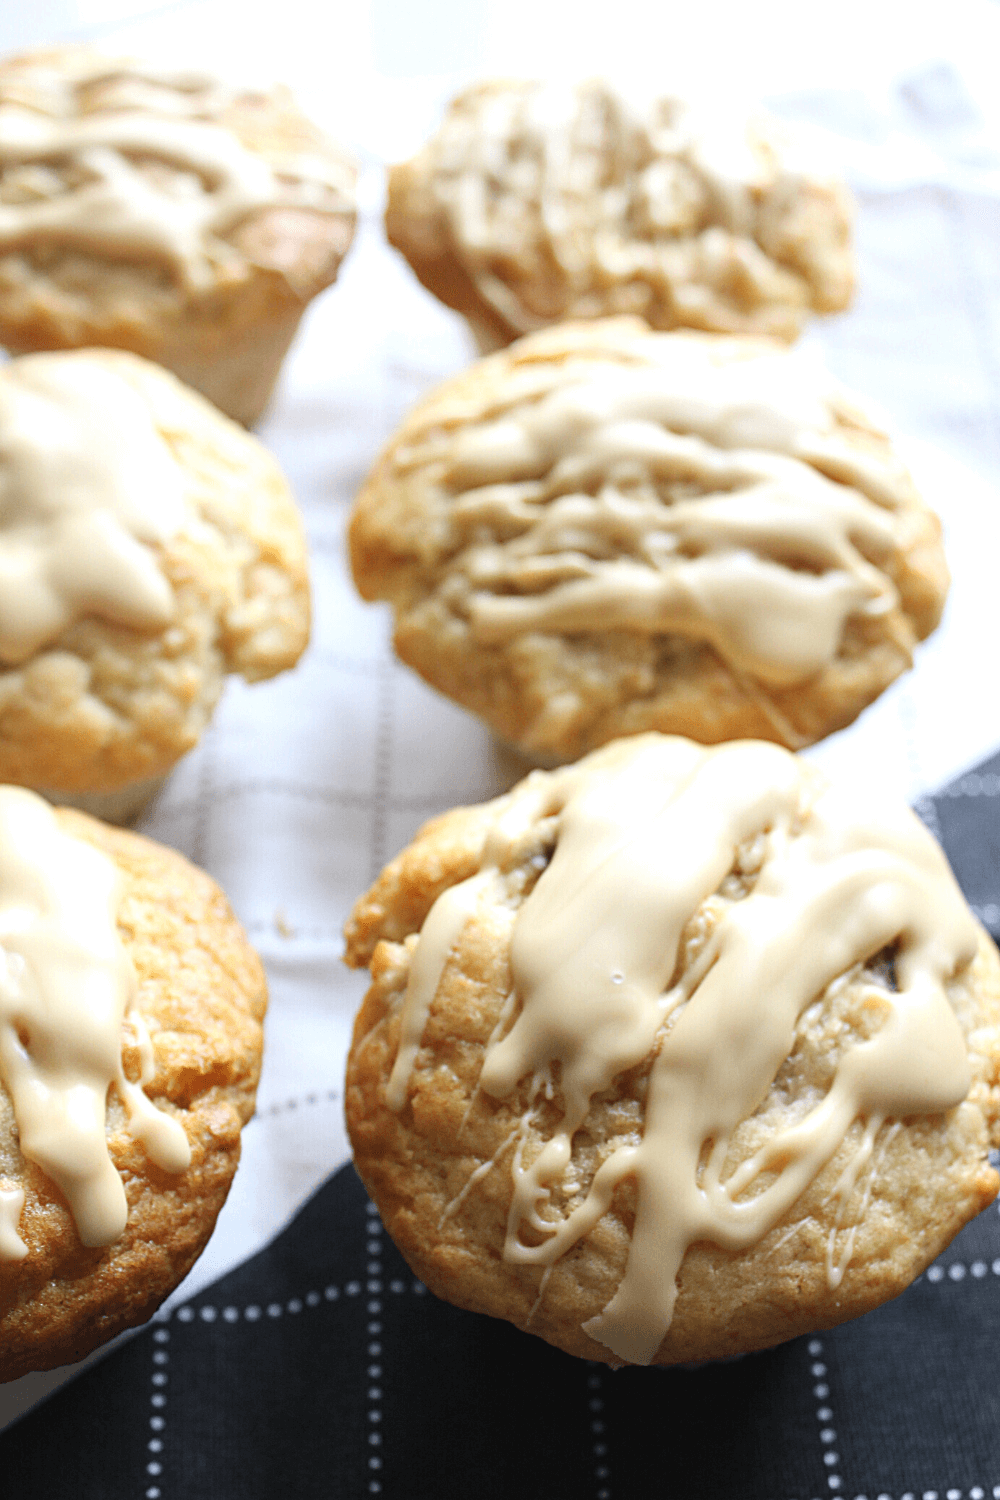 Banana and caramel is a combination that goes so well together, and so does banana and Caramilk in these banana Caramilk muffins.